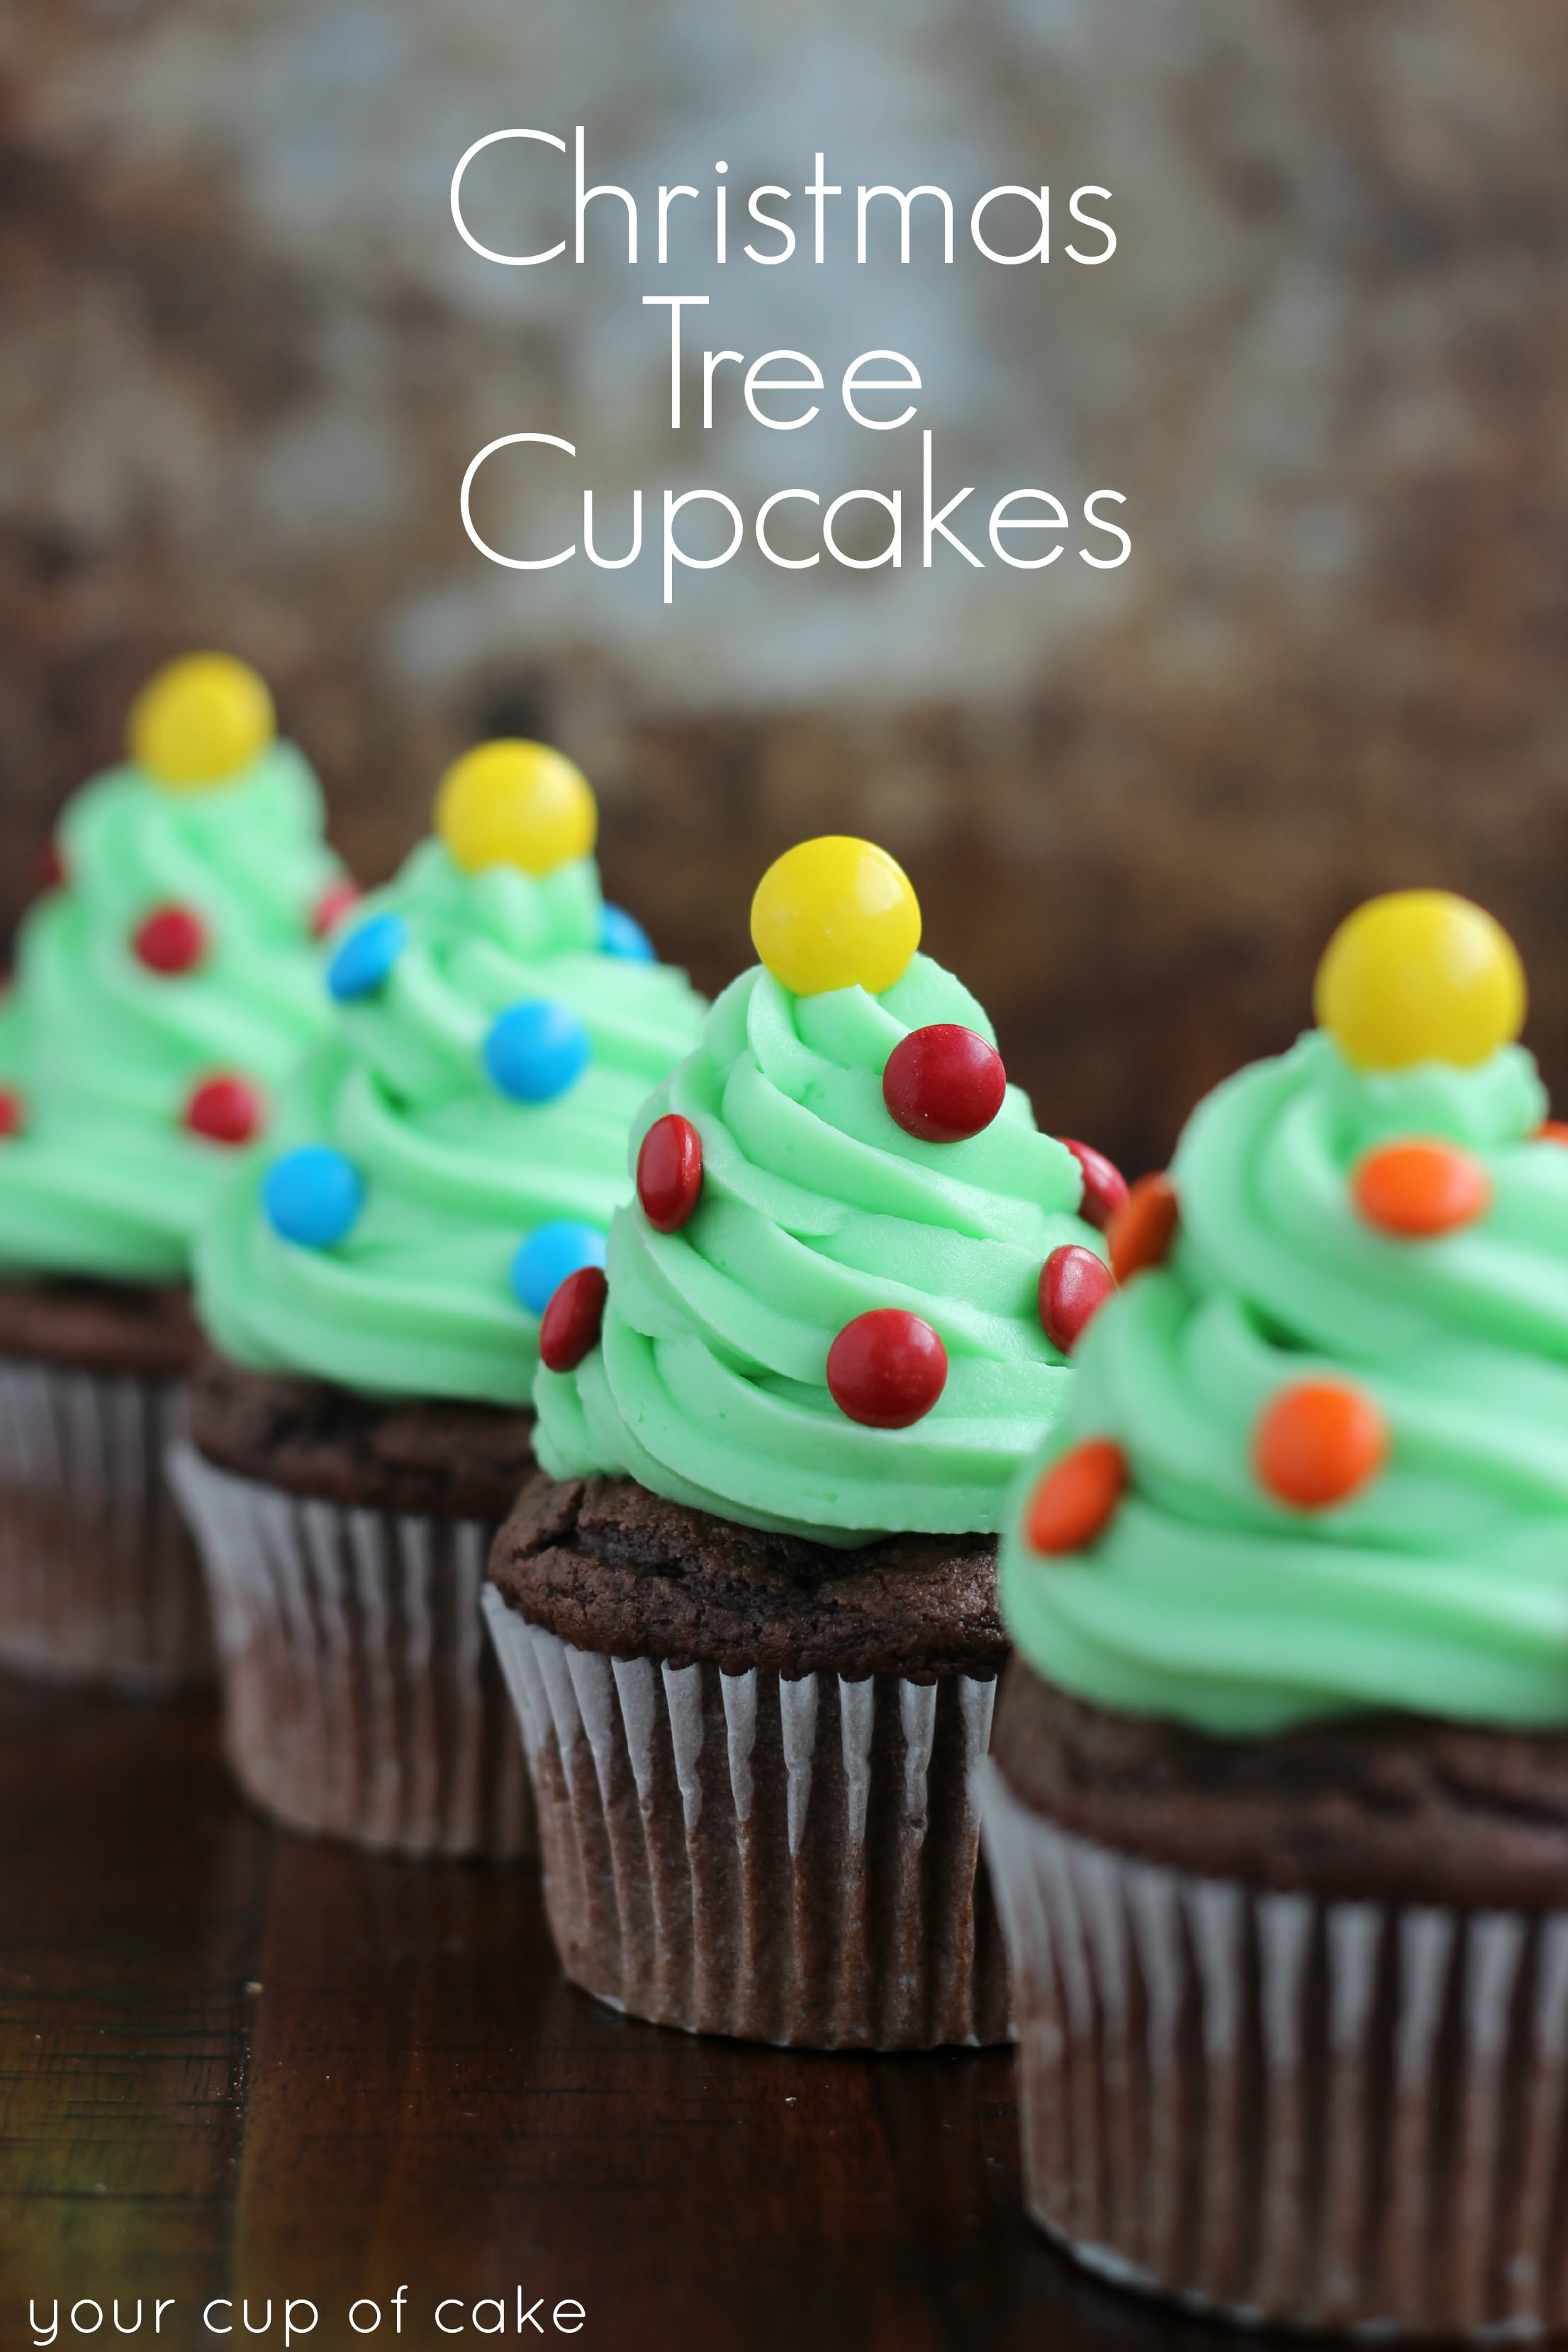 Christmas Cupcakes Images  Easy Cupcake Decorating for Christmas Your Cup of Cake